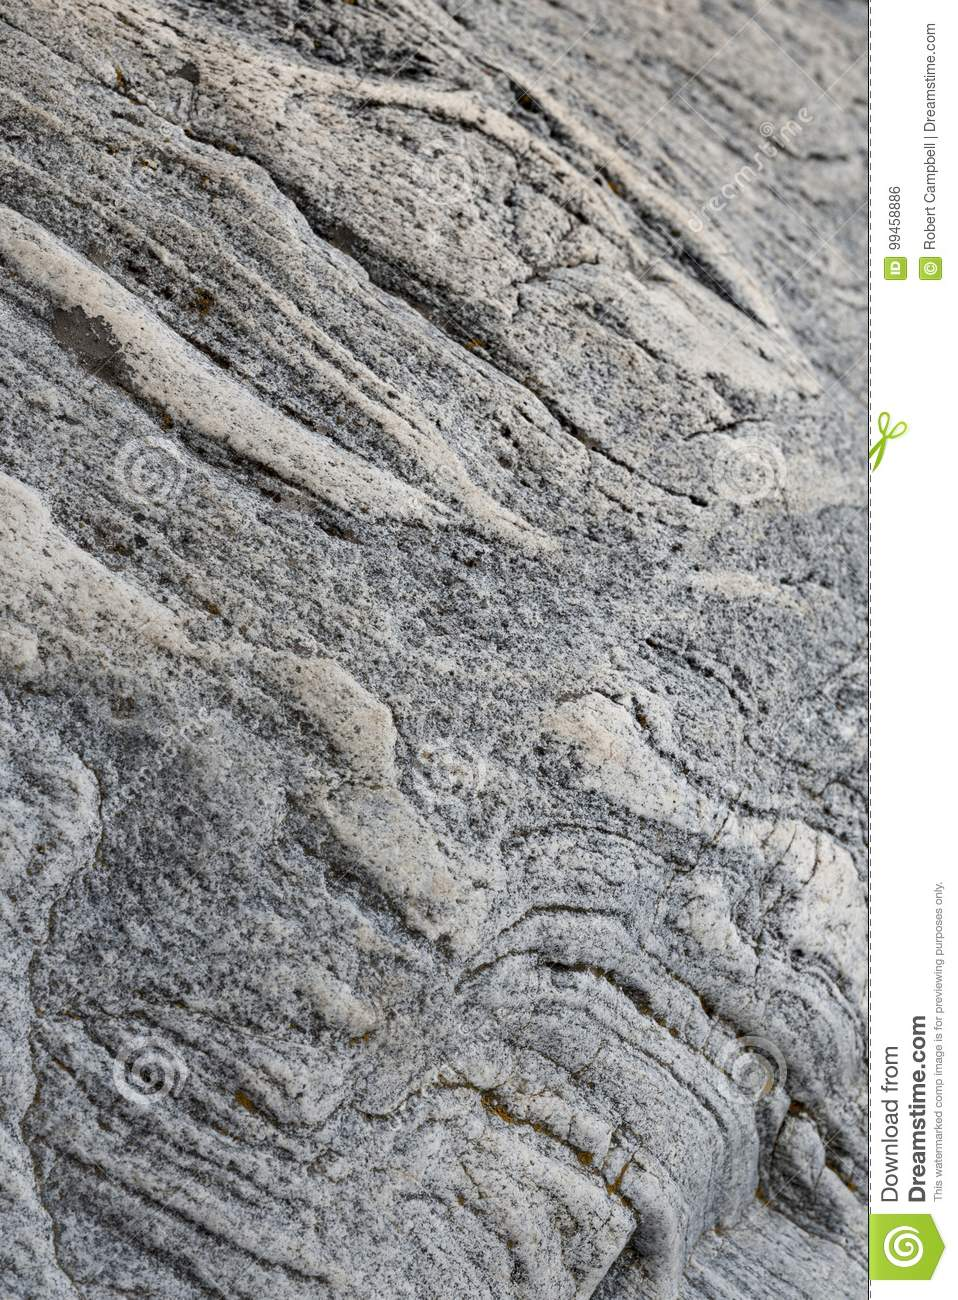 Rough Granite Stone : Natural rough granite stone showing wavy stratification